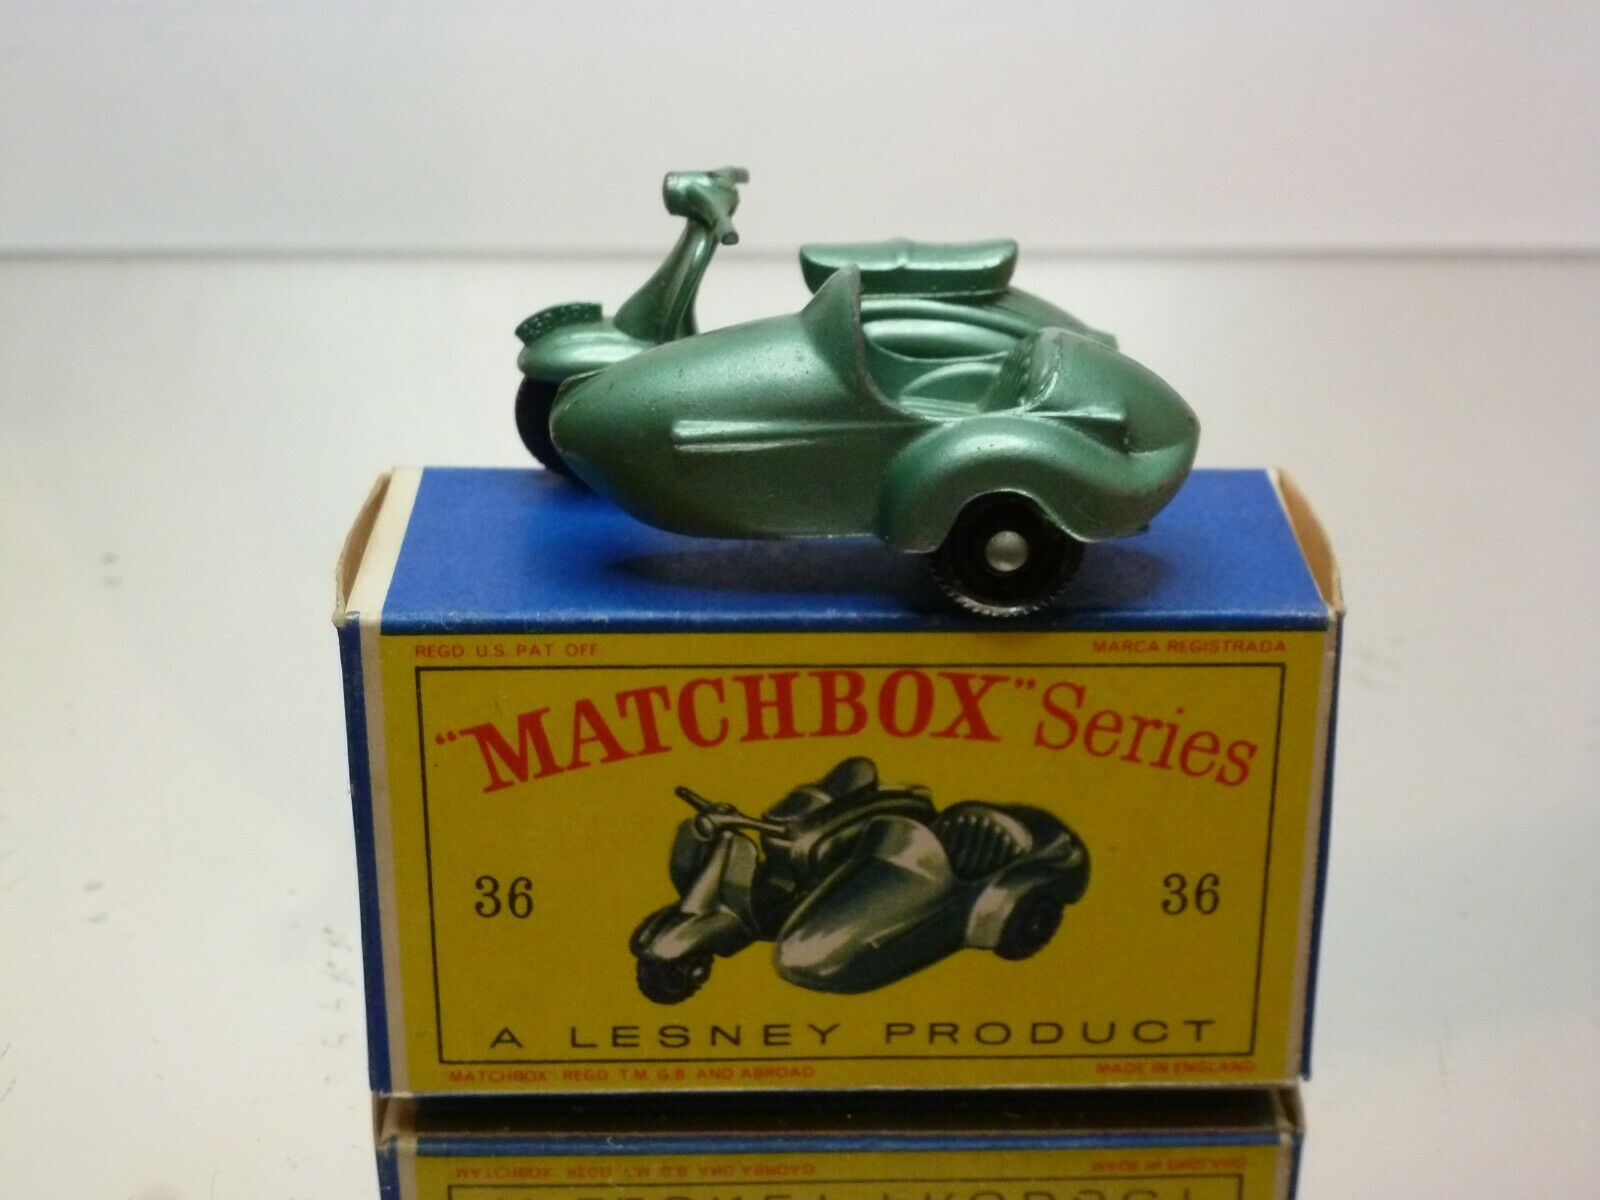 LESNEY MATCHBOX 36 MOTOR SCOOTER AND SIDE CAR - Grün METALLIC- VERY GOOD IN BOX